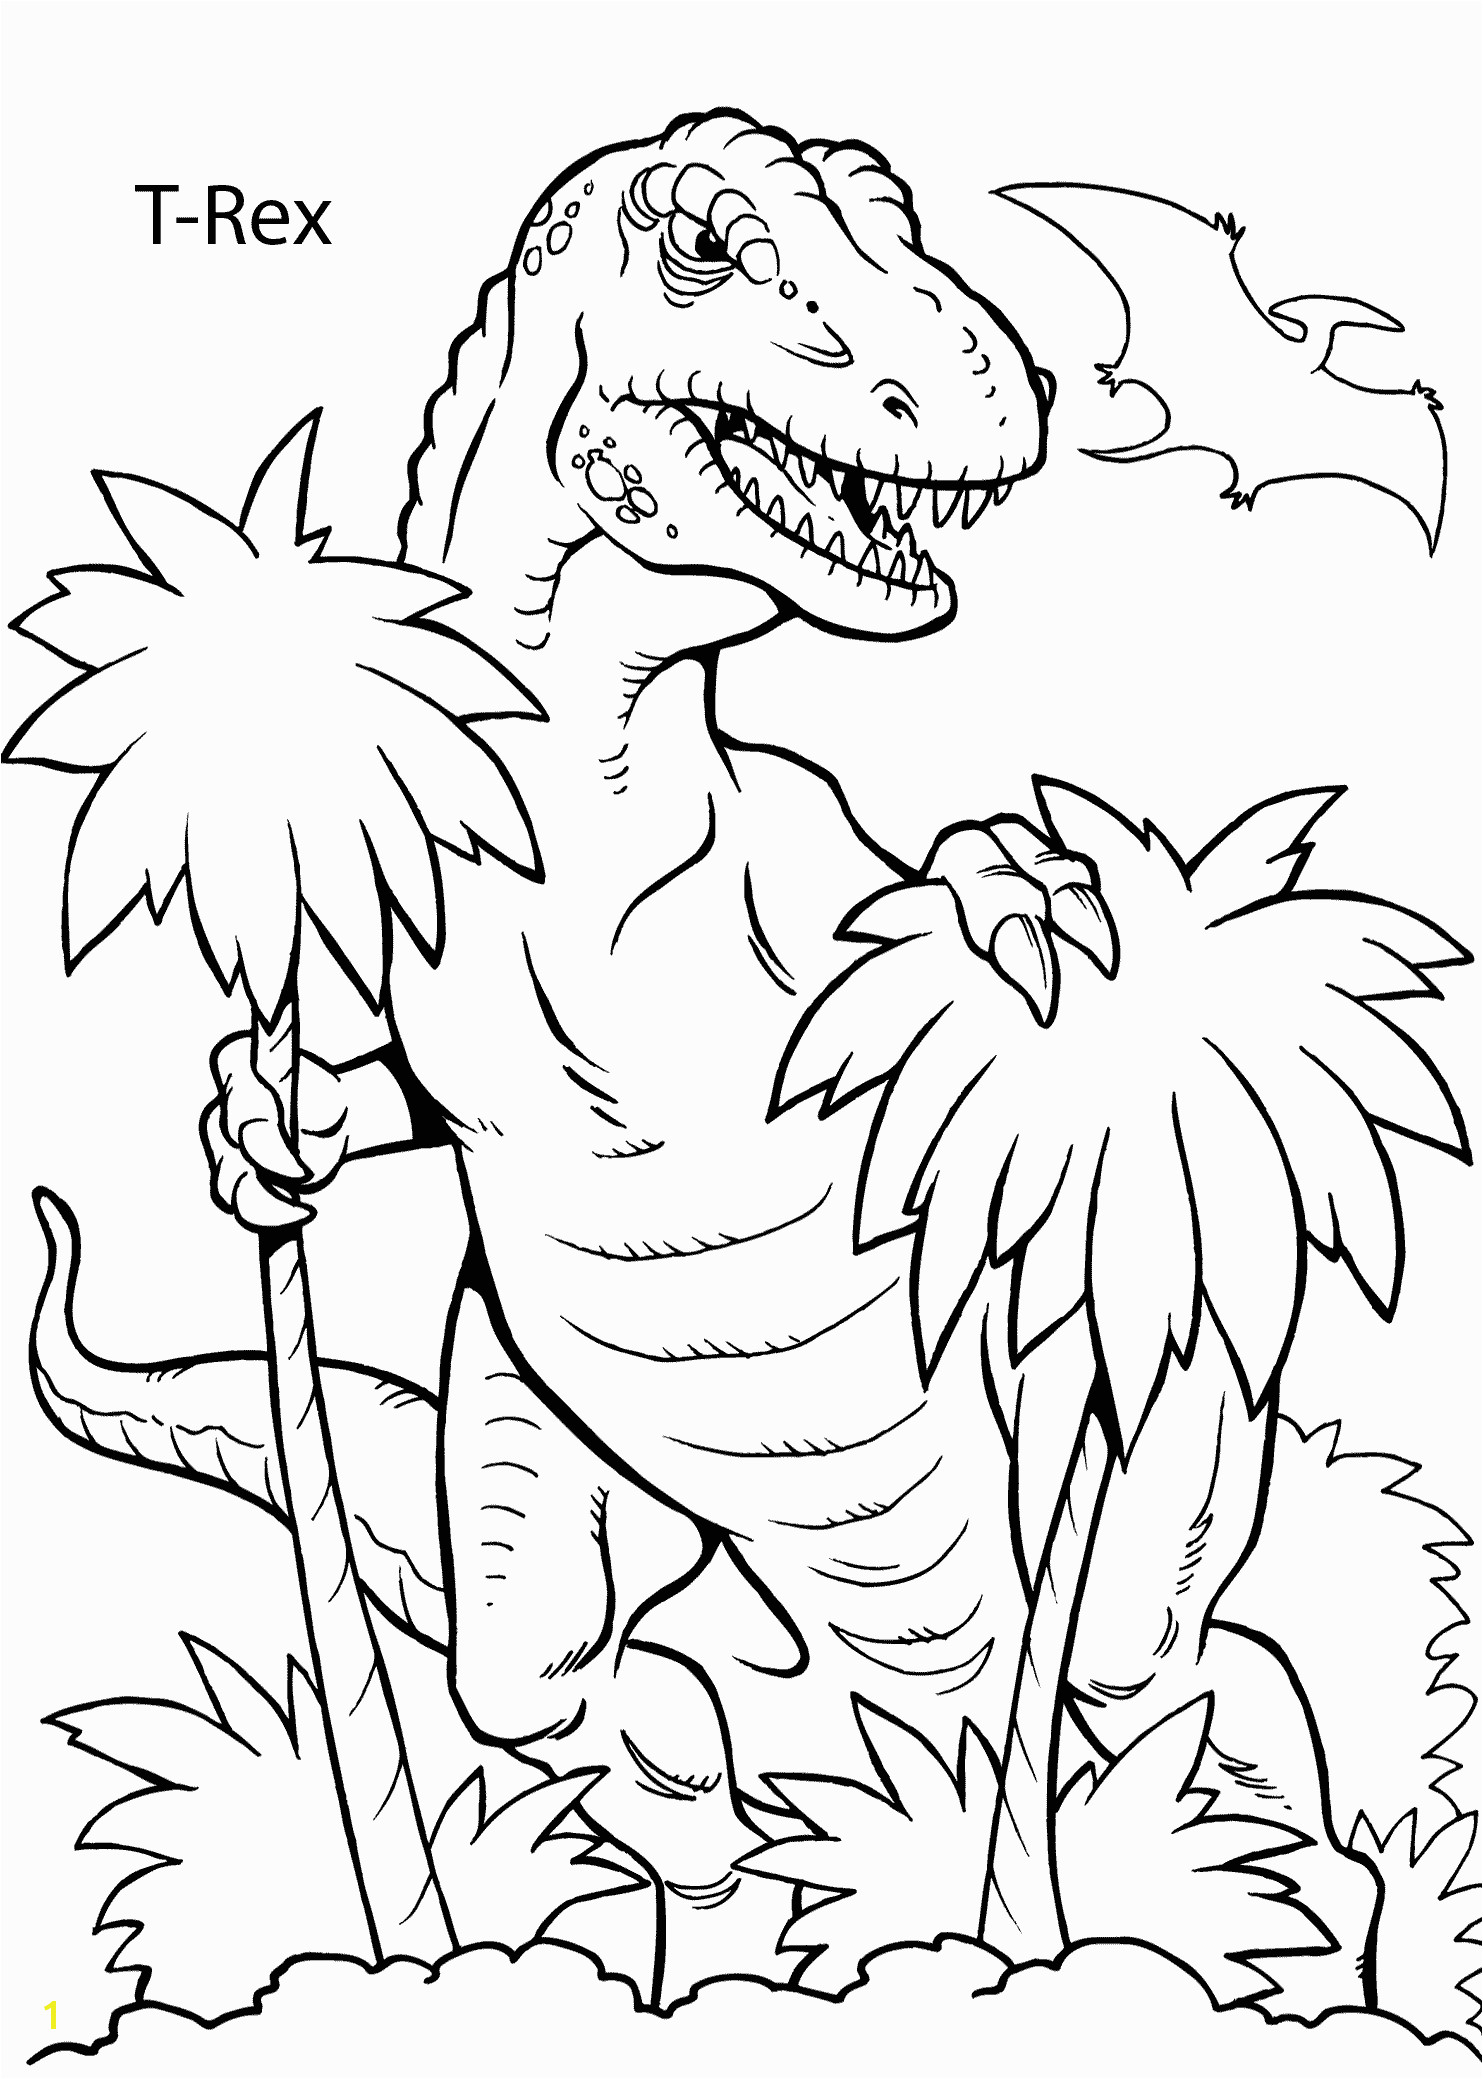 t rex dinosaur coloring pages for kids printable freet rex dinosaur coloring pages for kids